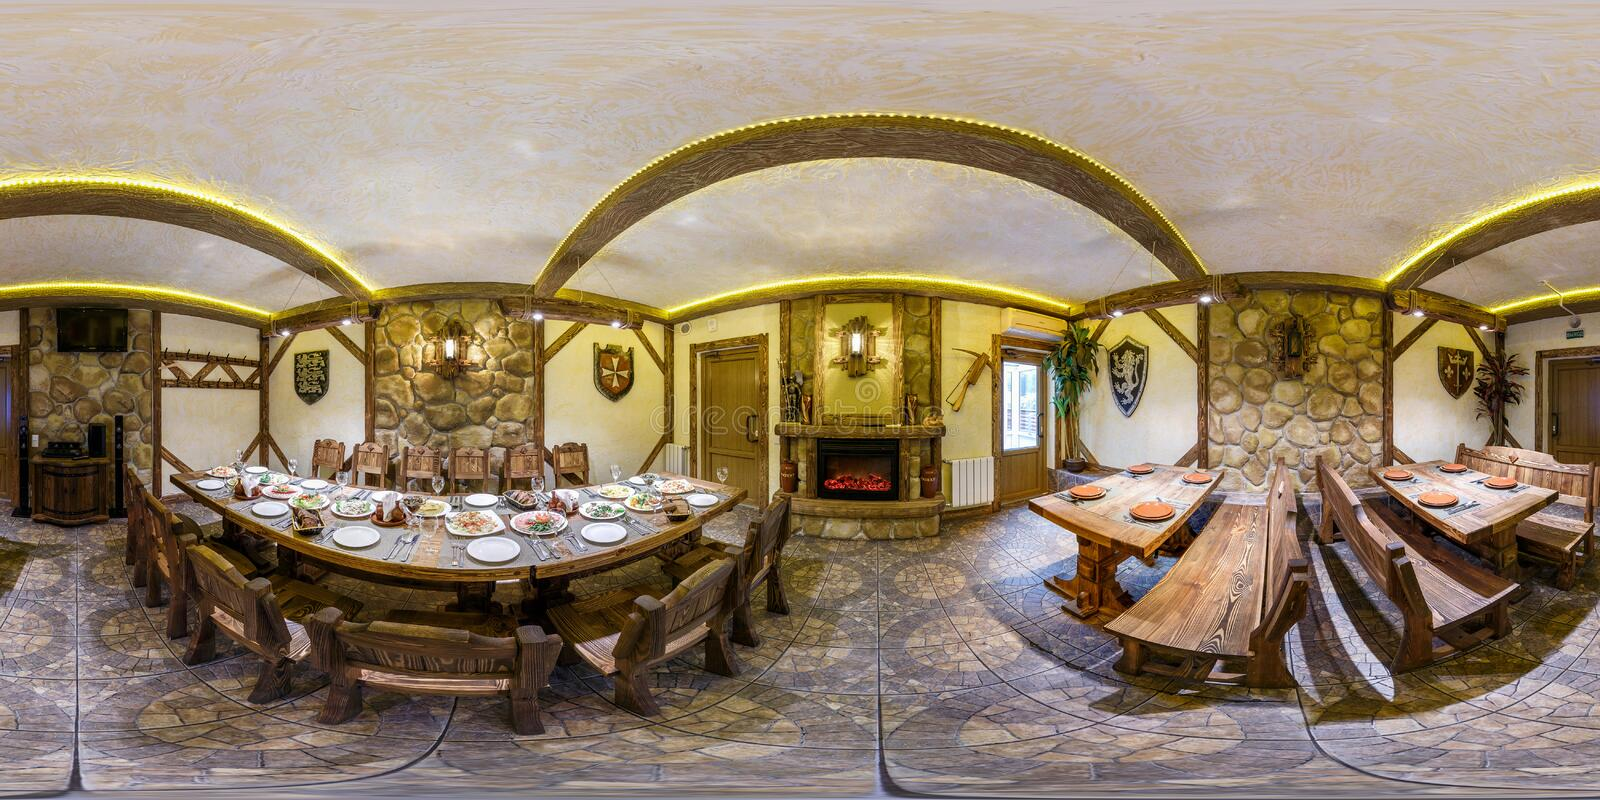 MINSK, BELARUS - OCTOBER 2, 2013: full 360 degree seamless panorama in equirectangular spherical equidistant projection. Panorama. In interior of vintage stock photos